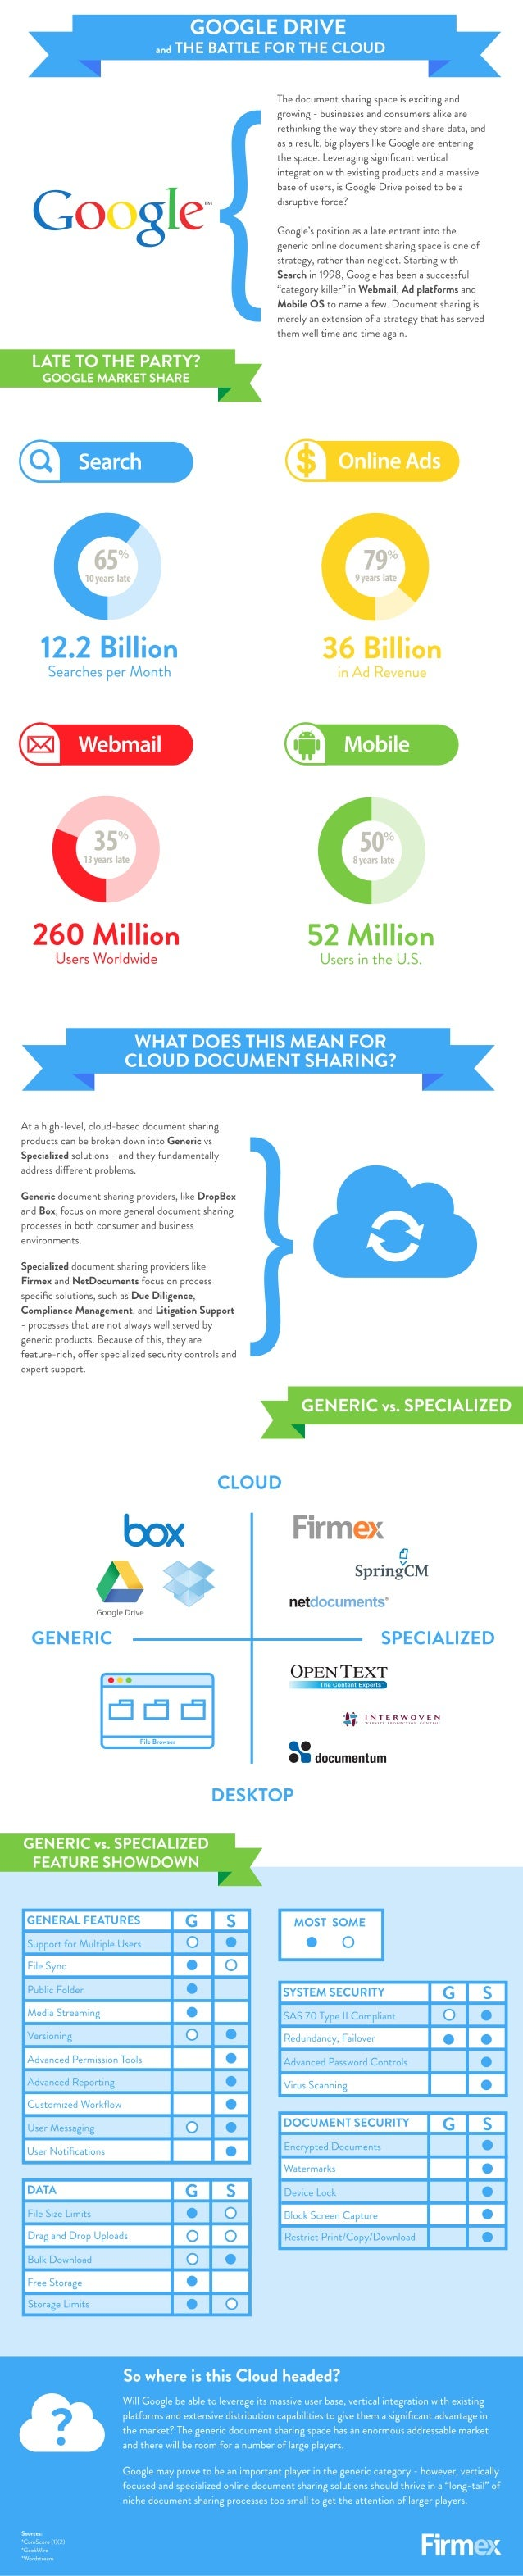 Generic vs. Specialized Document Sharing in the Cloud